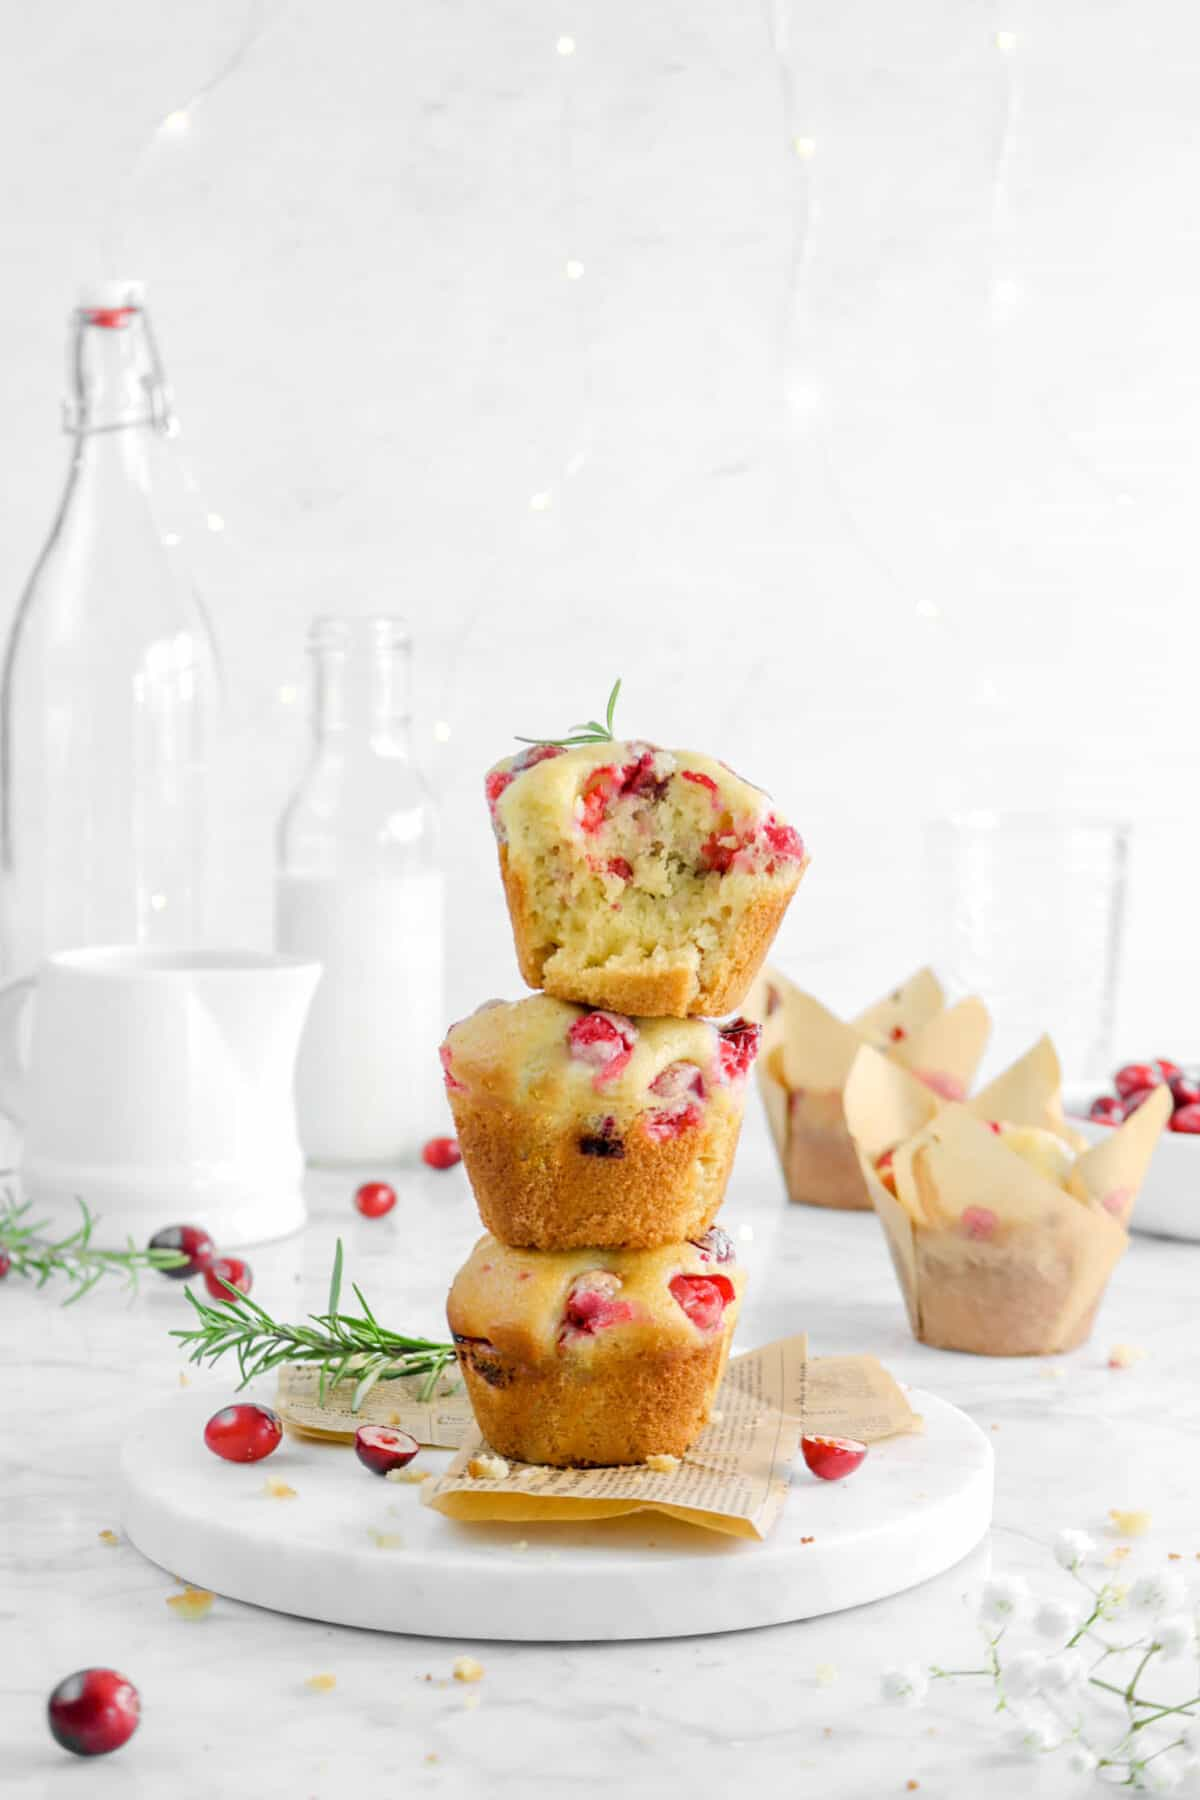 three muffins stacked on marble board with rosemary sprigs, cranberries, milk glasses, and more muffins behind